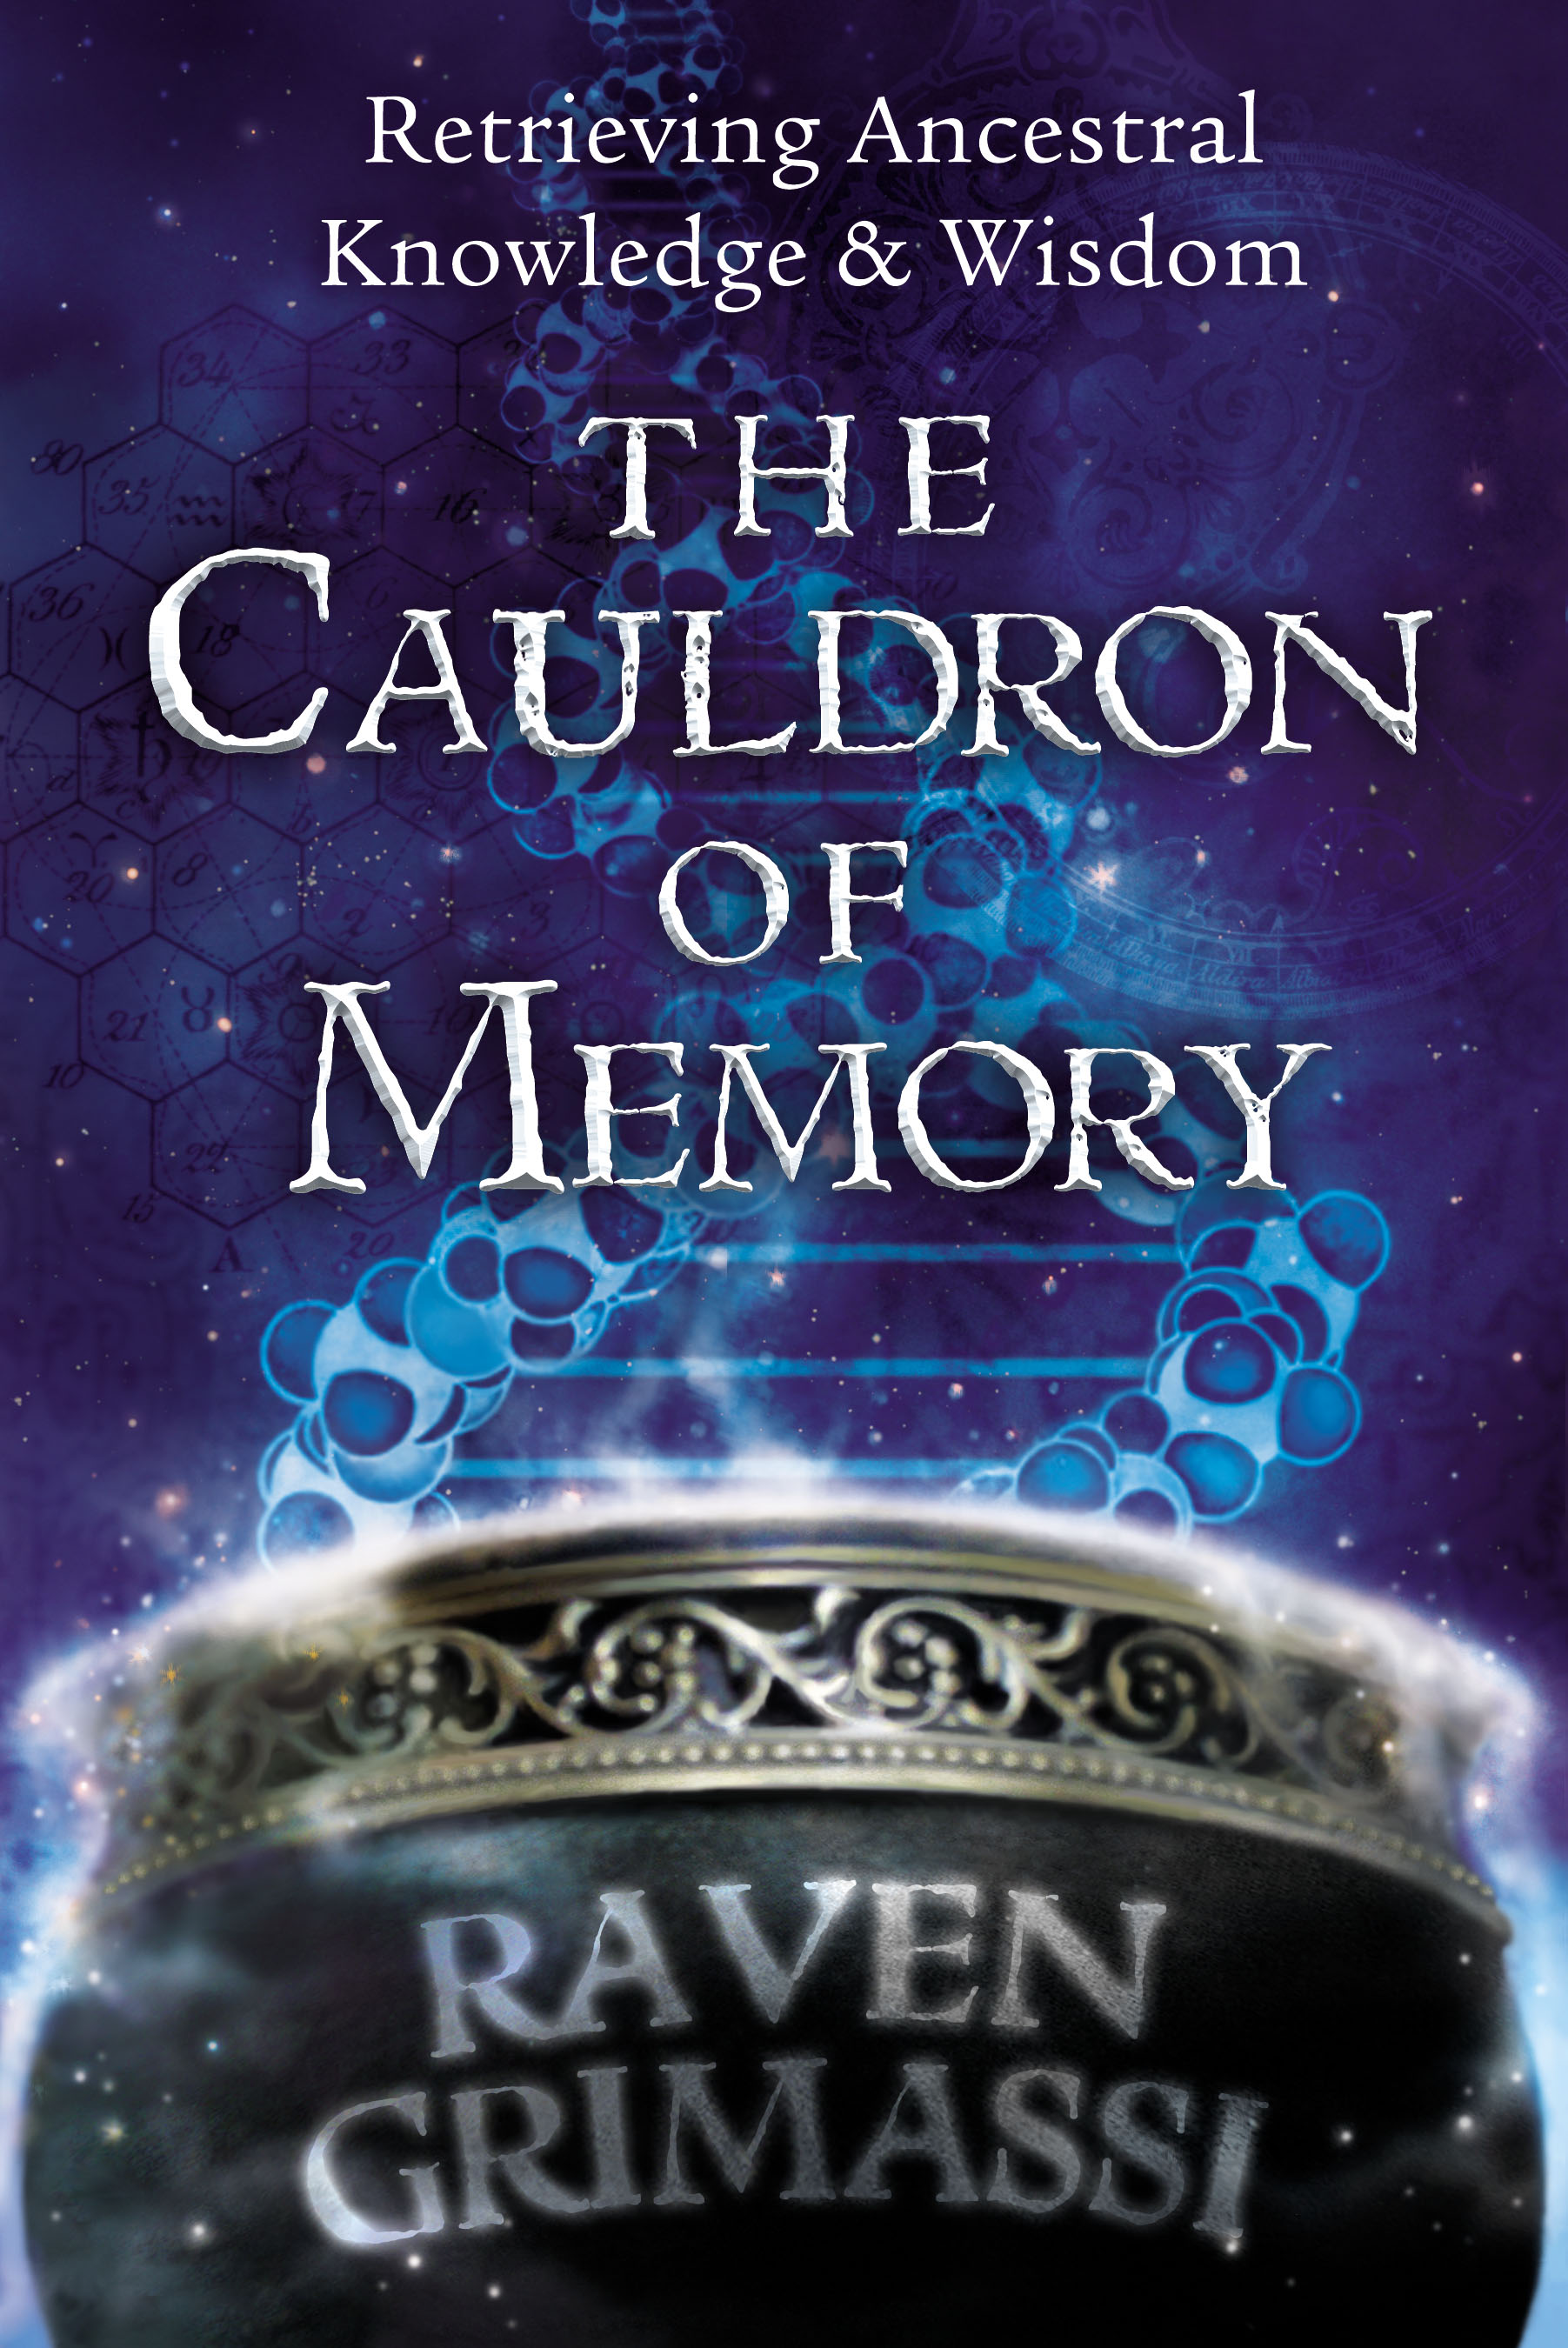 The Cauldron of Memory – Retrieving Ancestral Knowledge and Wisdom